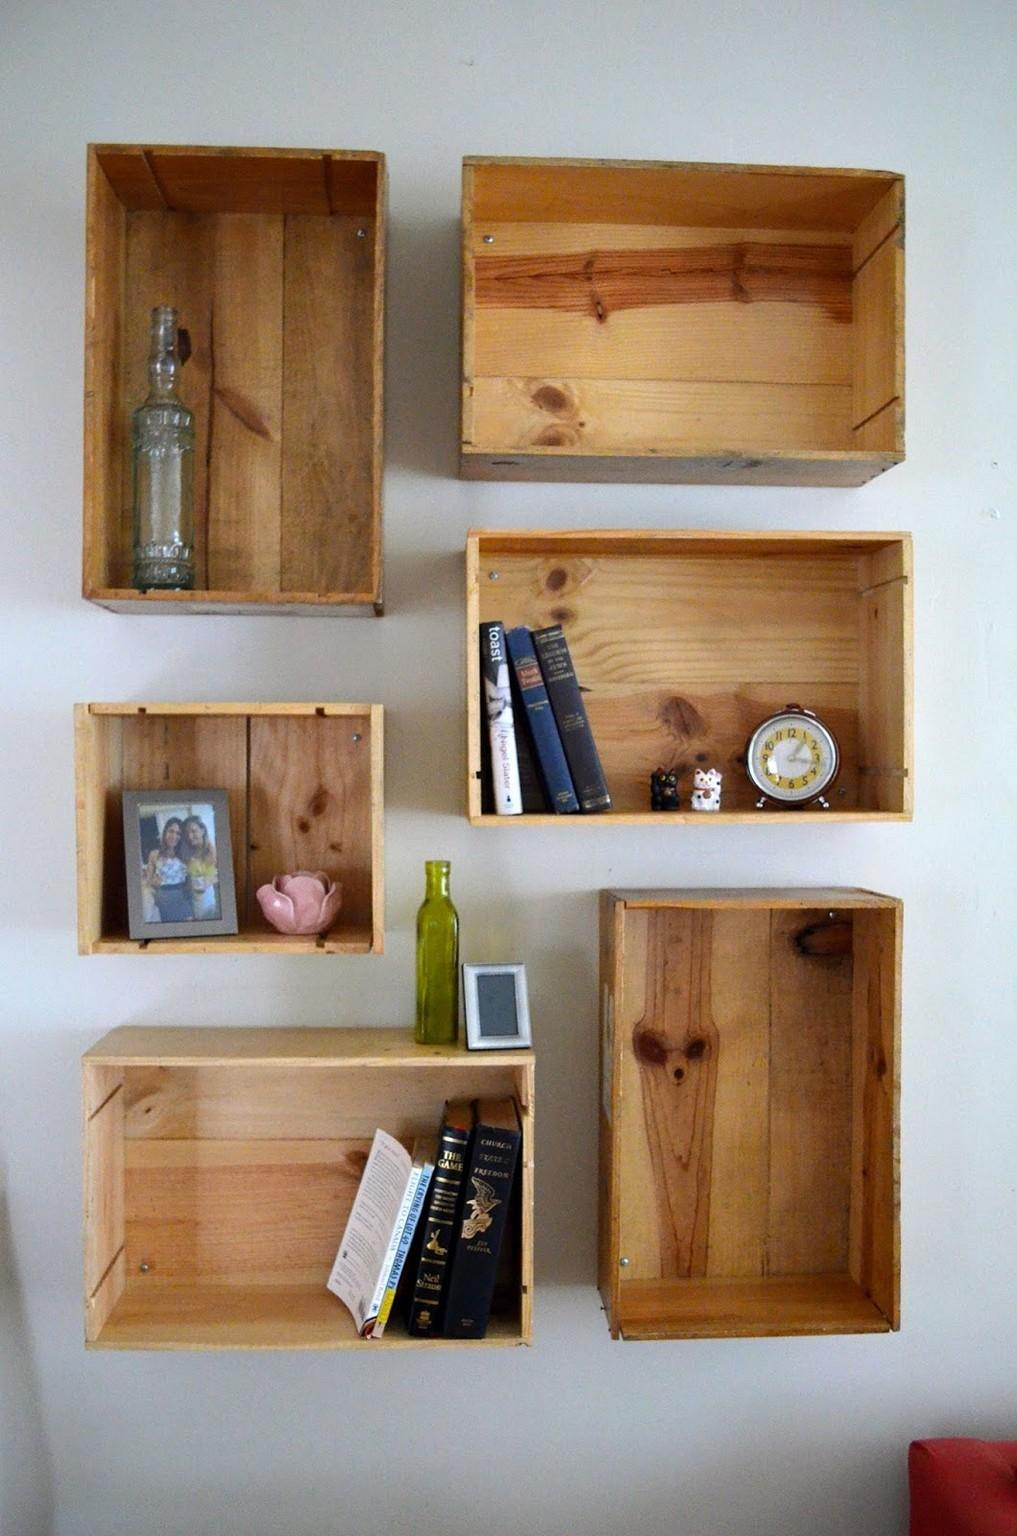 Diy Wall Shelves More Organized Interior